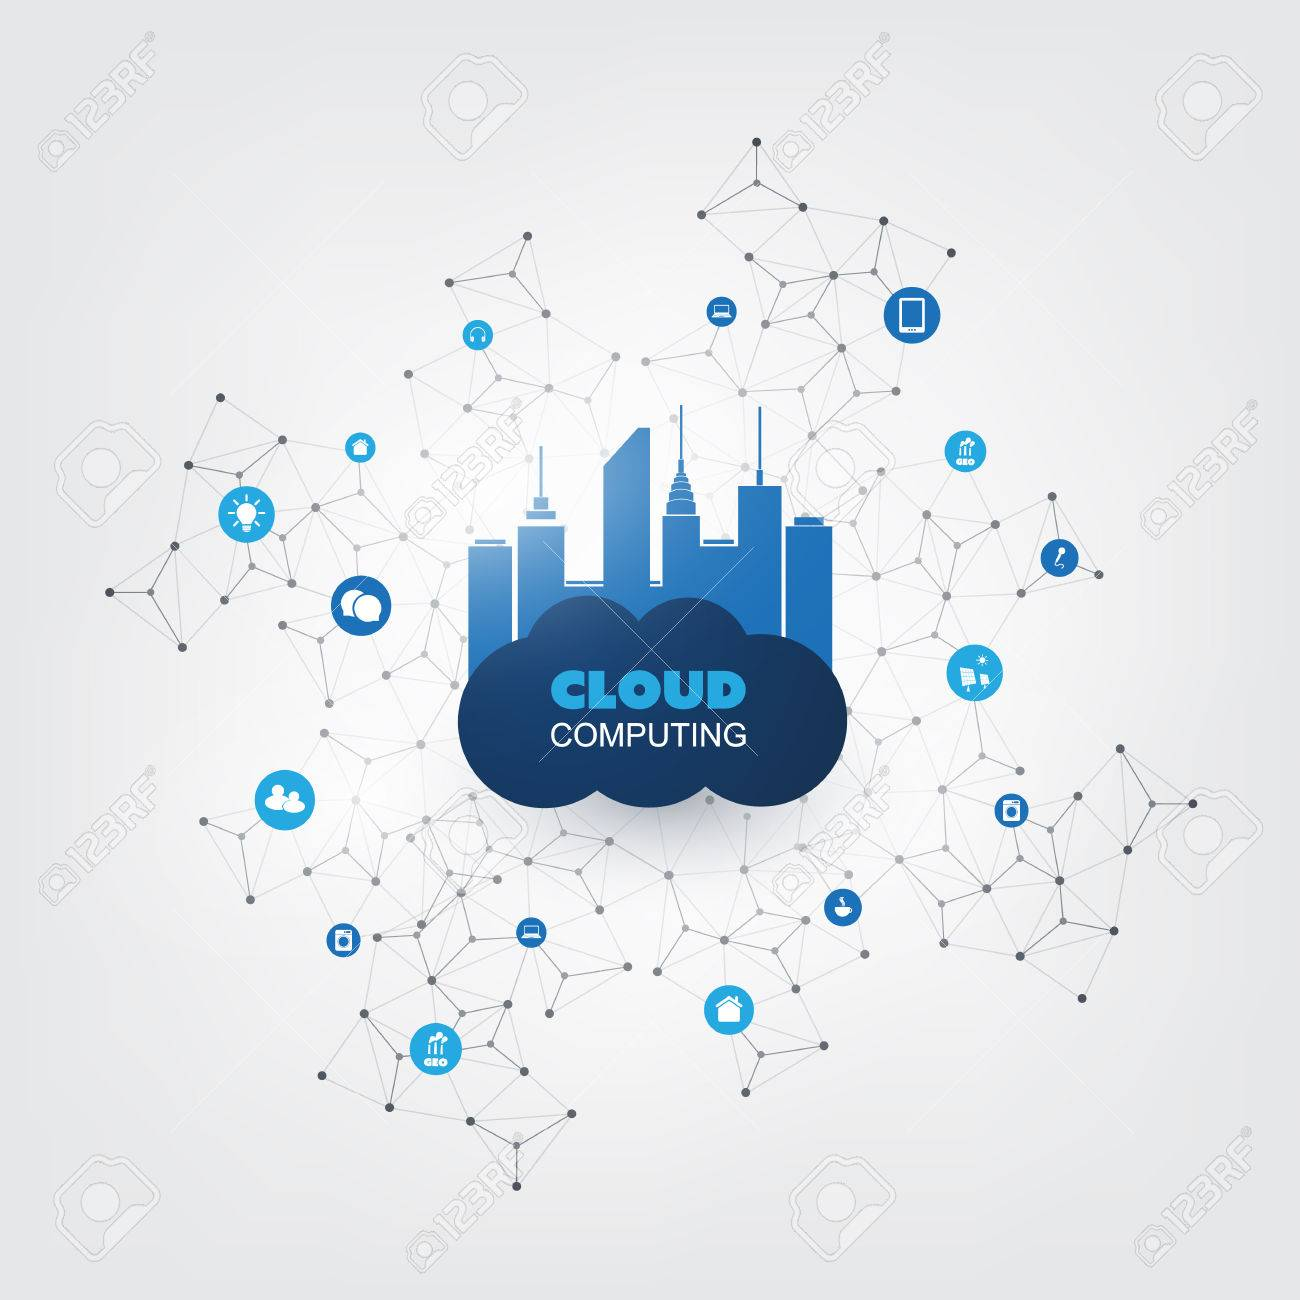 Cloud Computing Design Concept with Icons - Digital Network Connections, Technology Background - 70108242